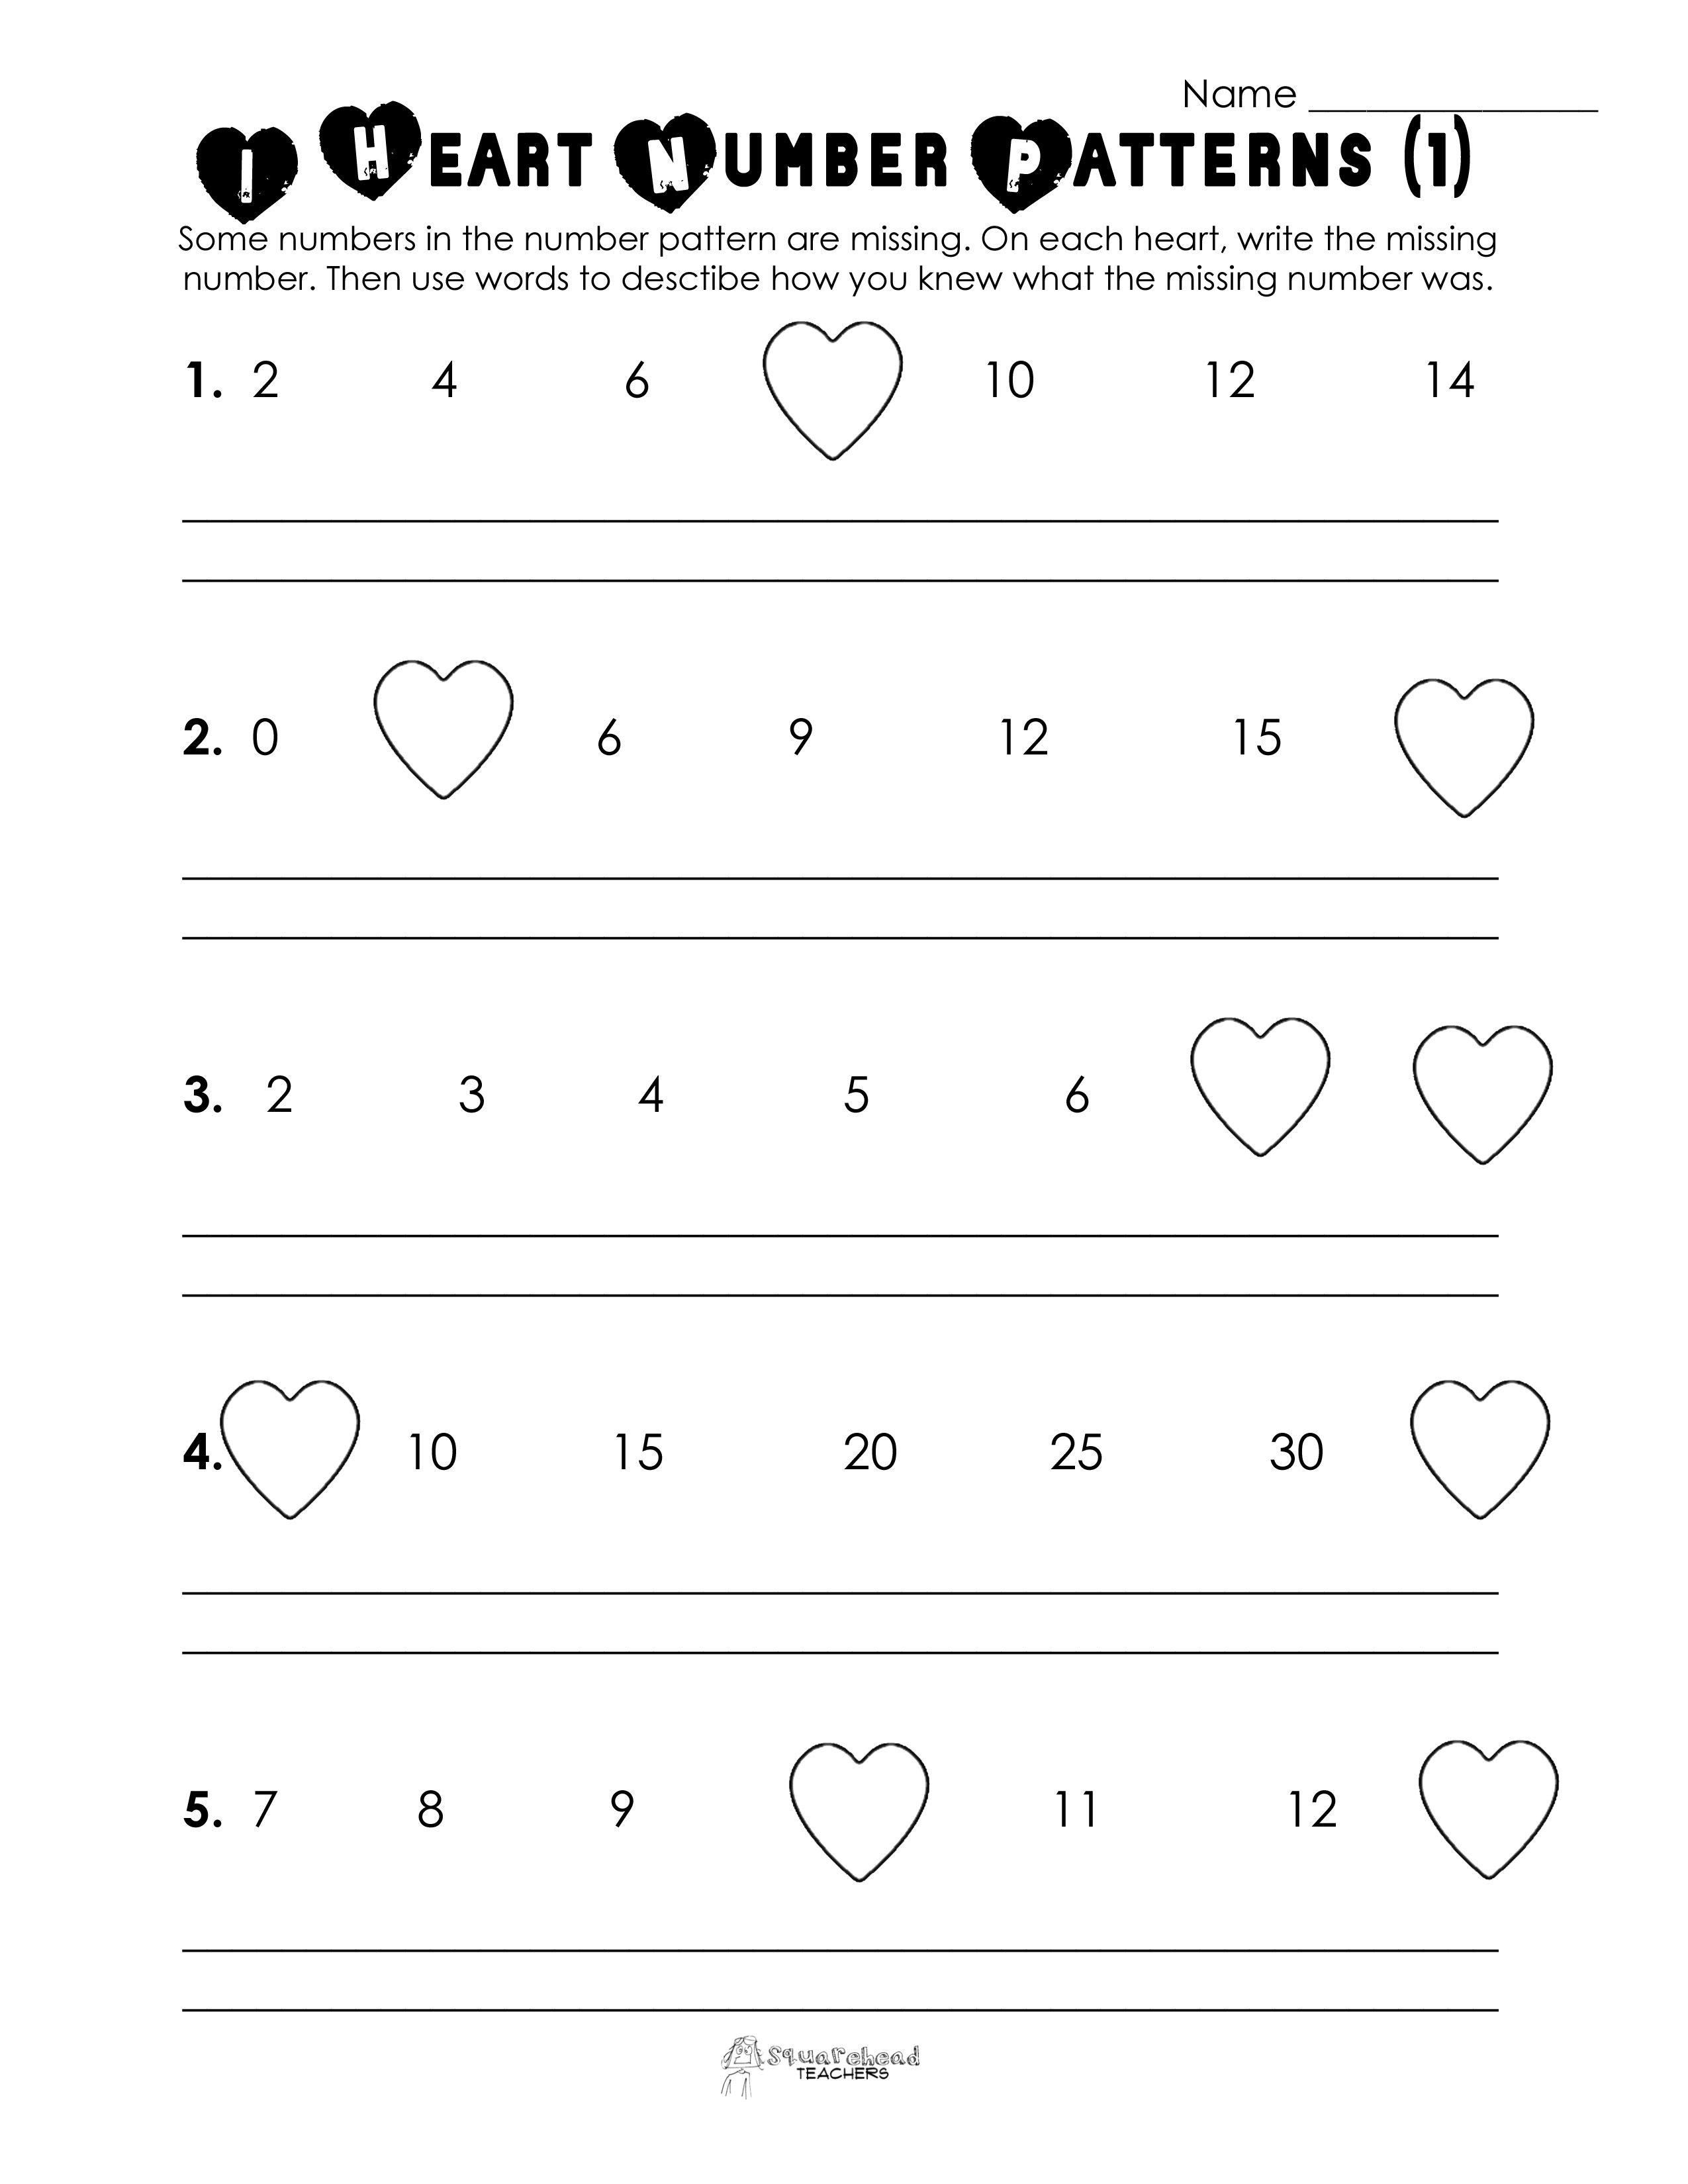 Number Patterns Worksheets   Printable Worksheets and Activities for  Teachers [ 3300 x 2550 Pixel ]